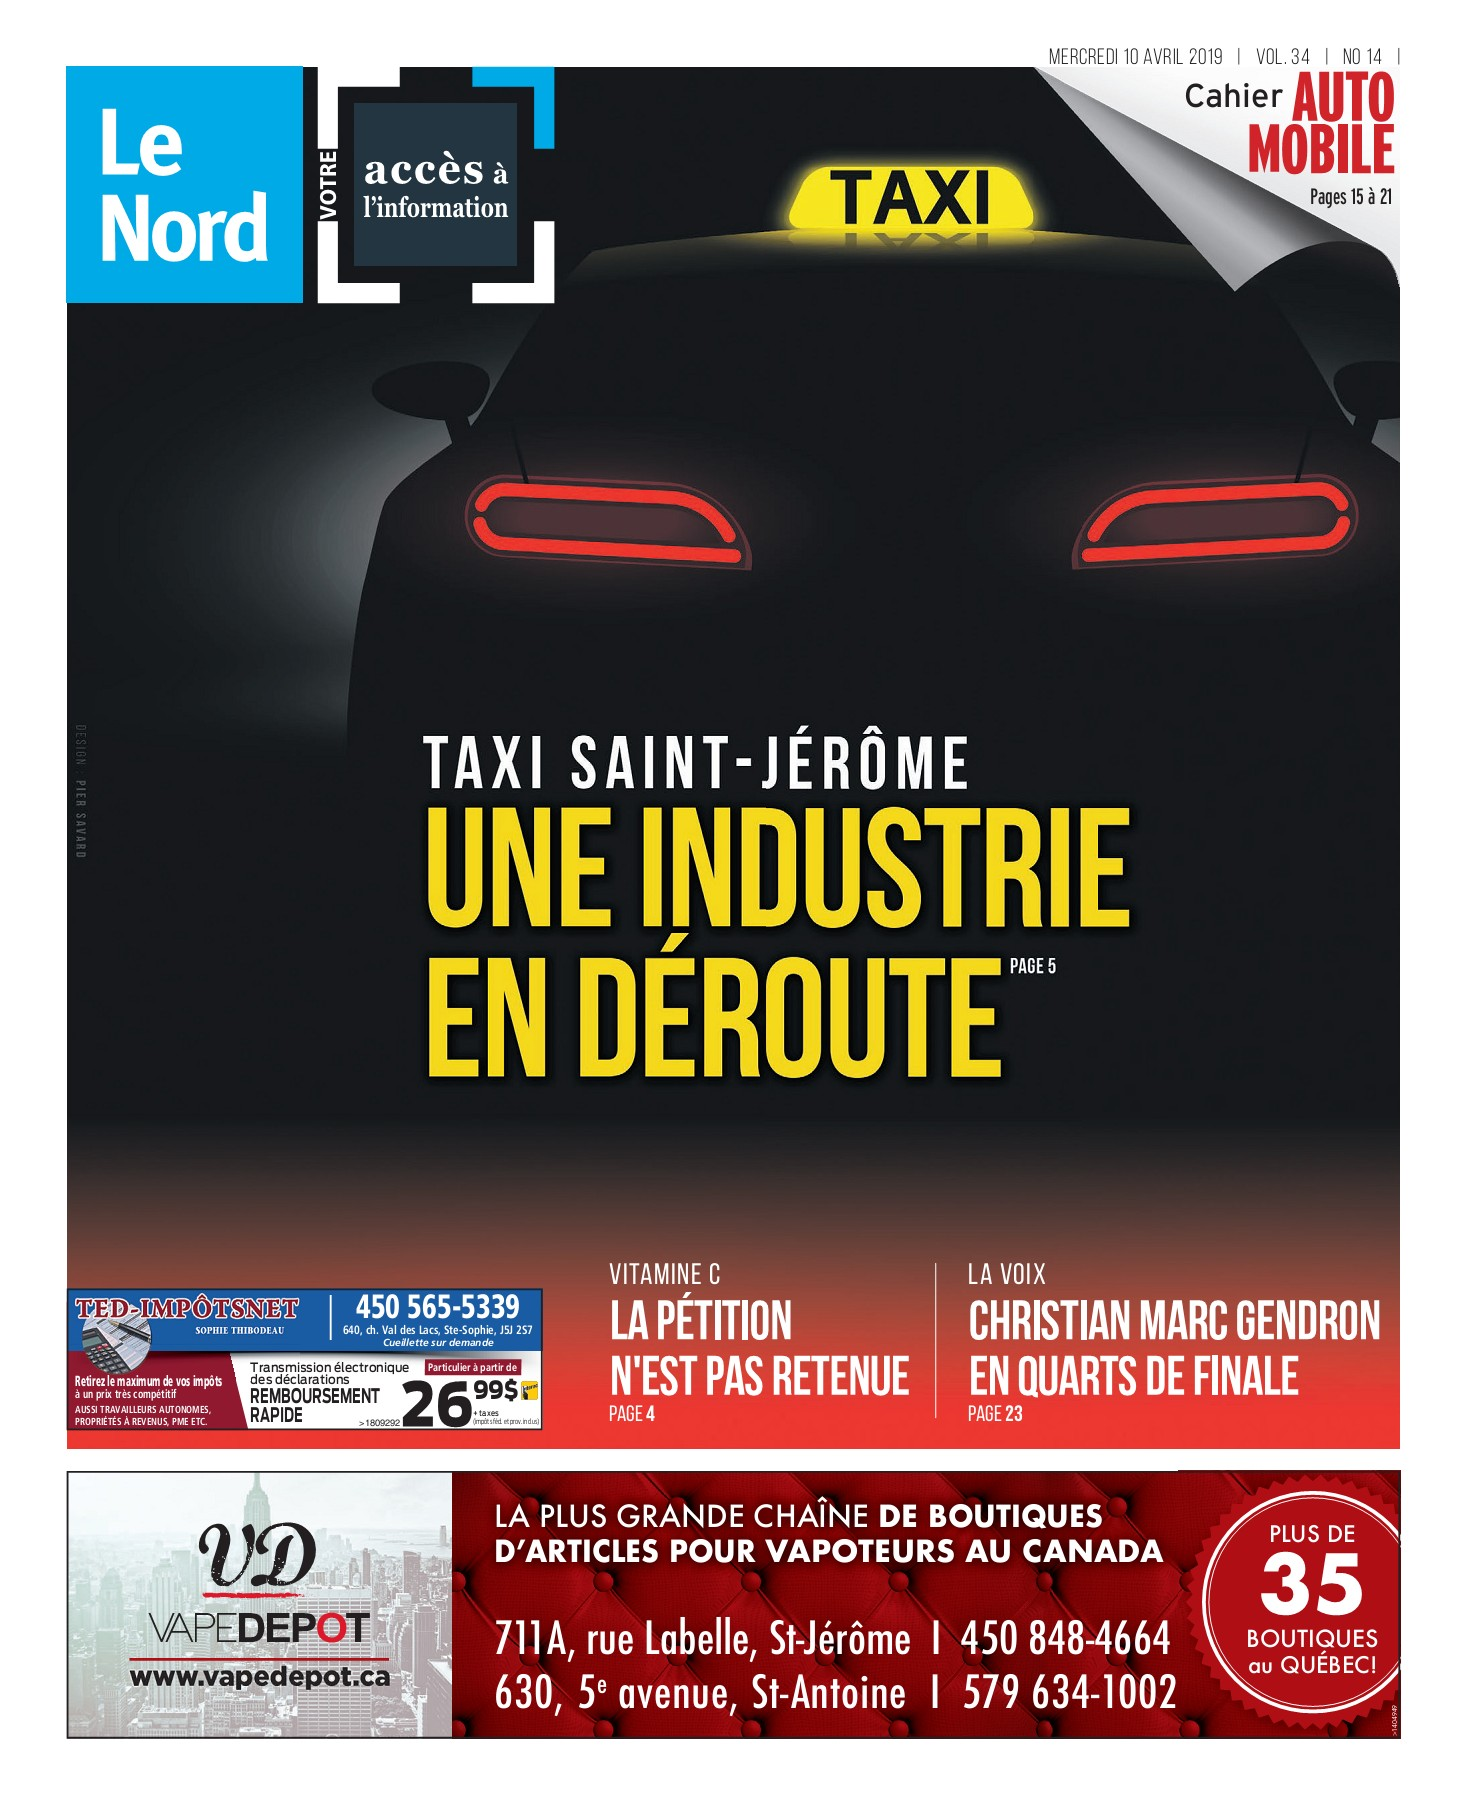 Le Nord 10 Avril 2019 Pages 1 40 Flip Pdf Download Fliphtml5